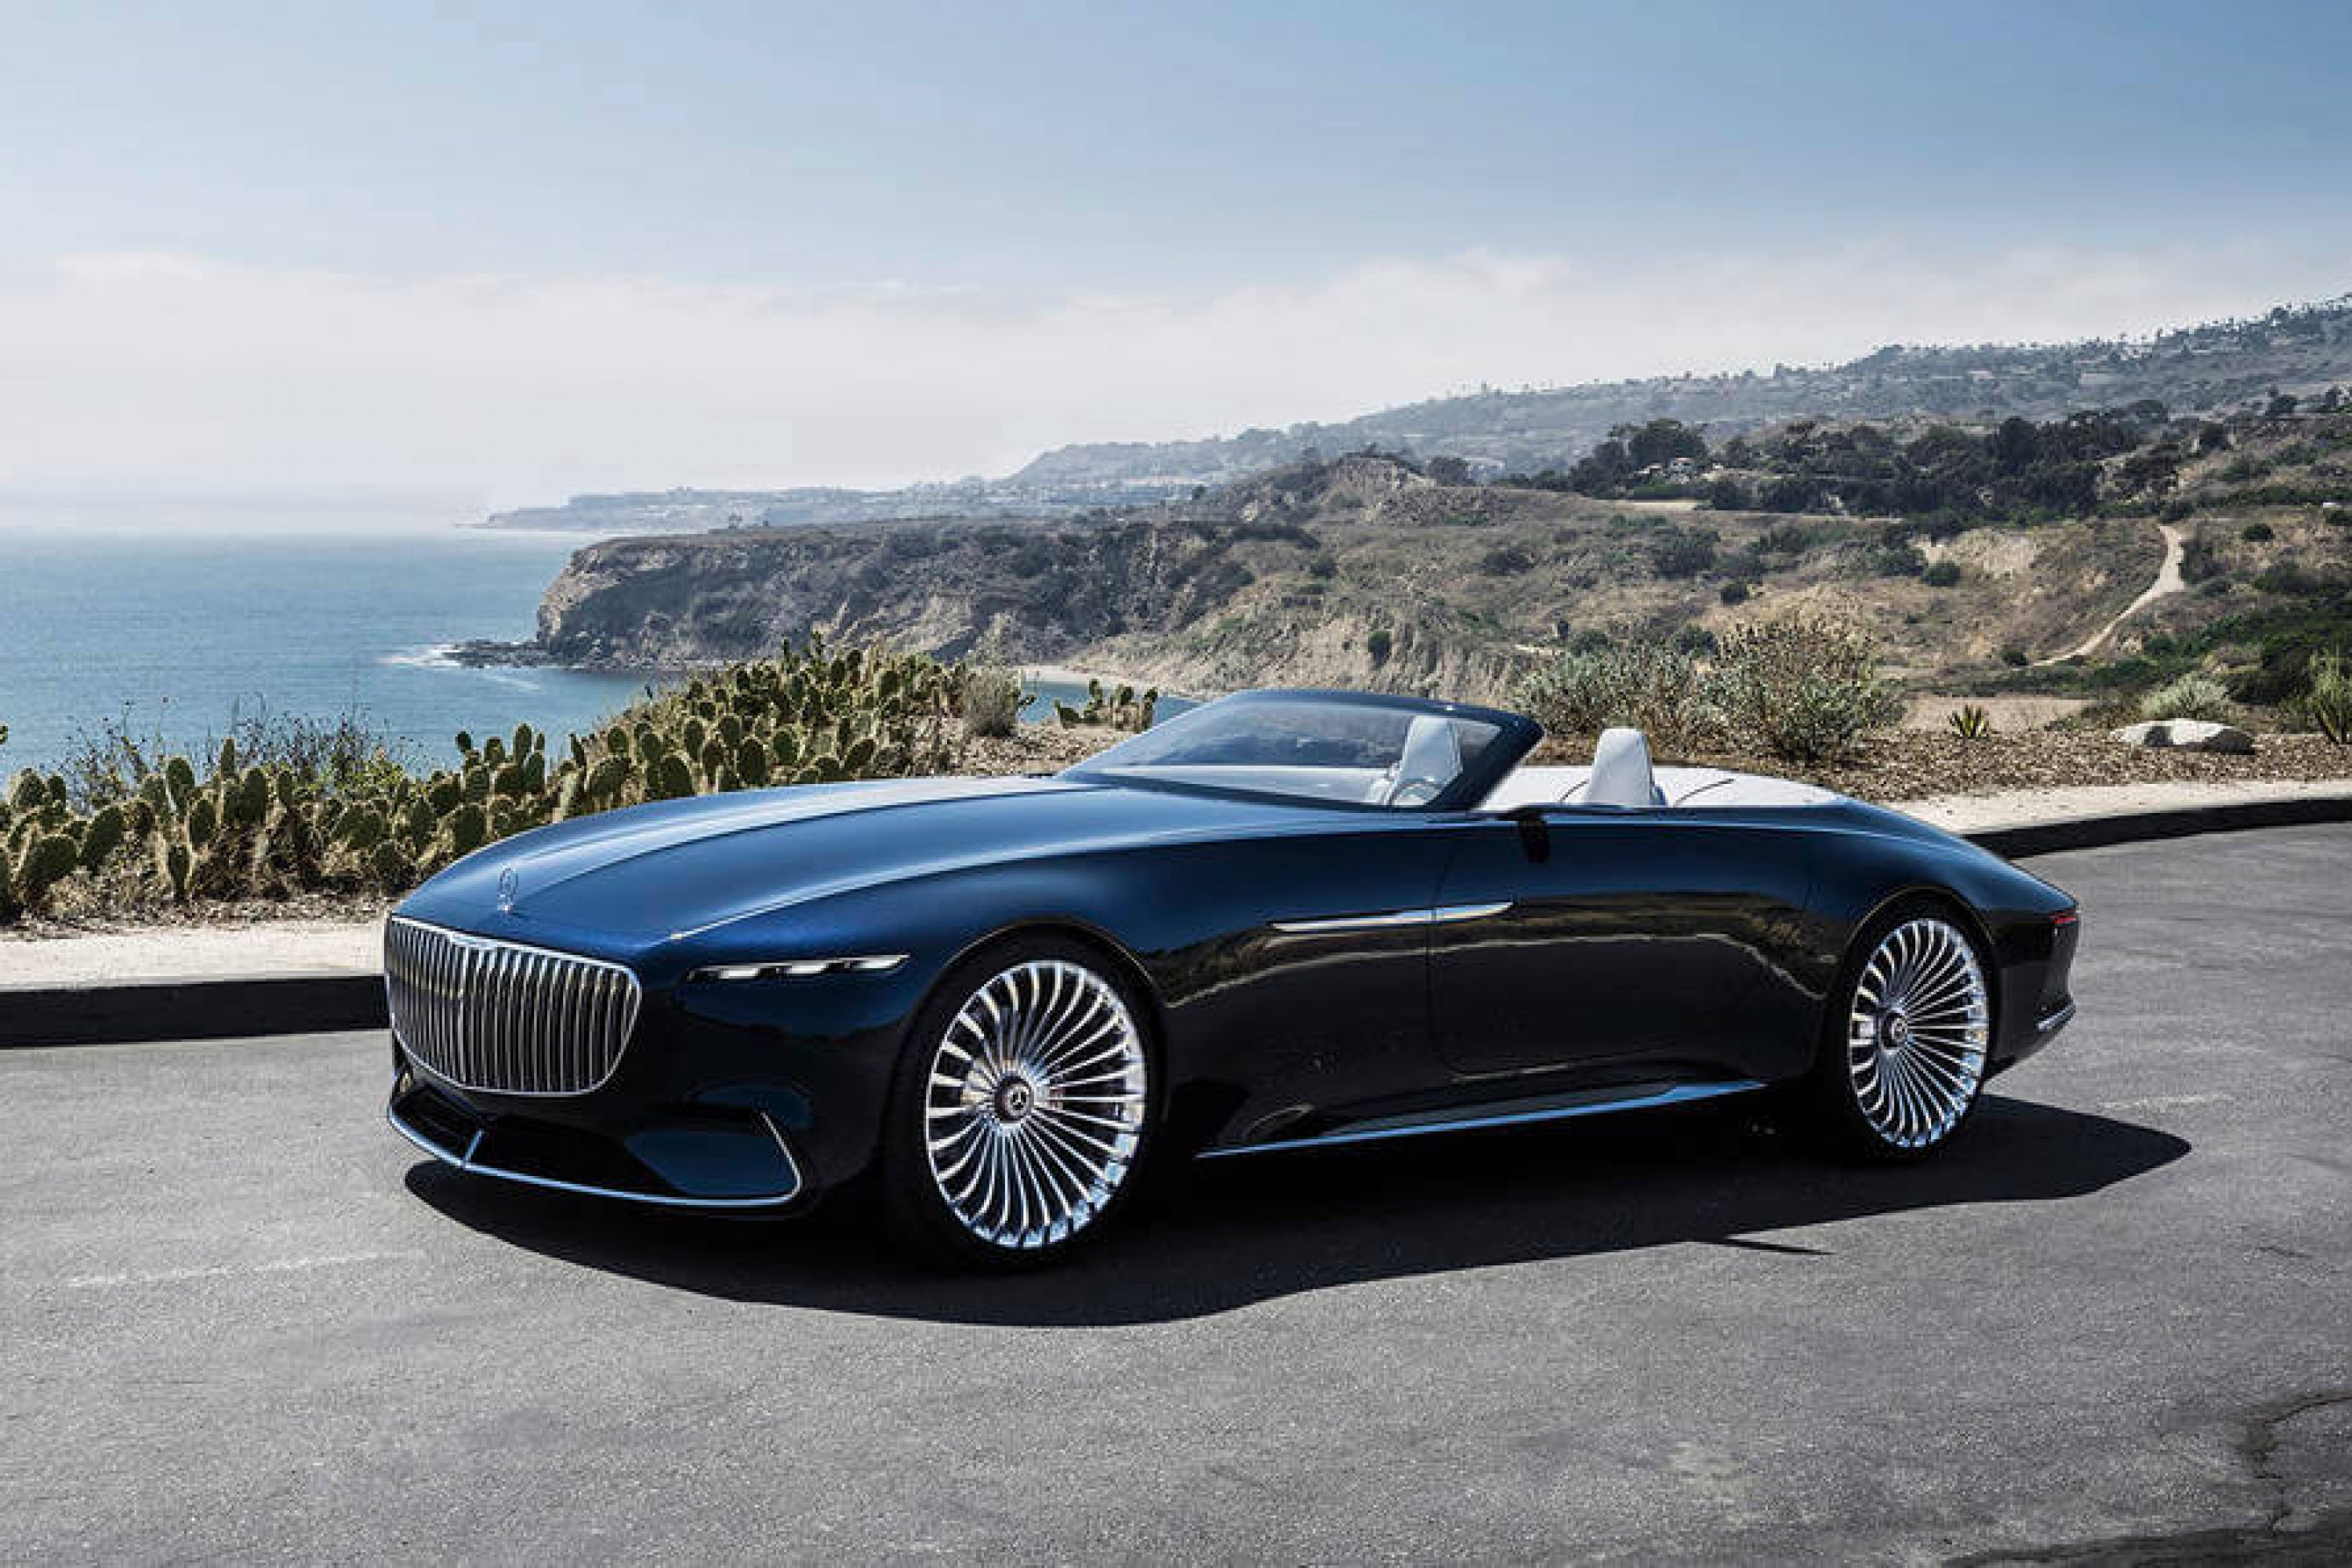 mercedes maybach 6 cabriolet unveiled at pebble beach billionaire toys. Black Bedroom Furniture Sets. Home Design Ideas